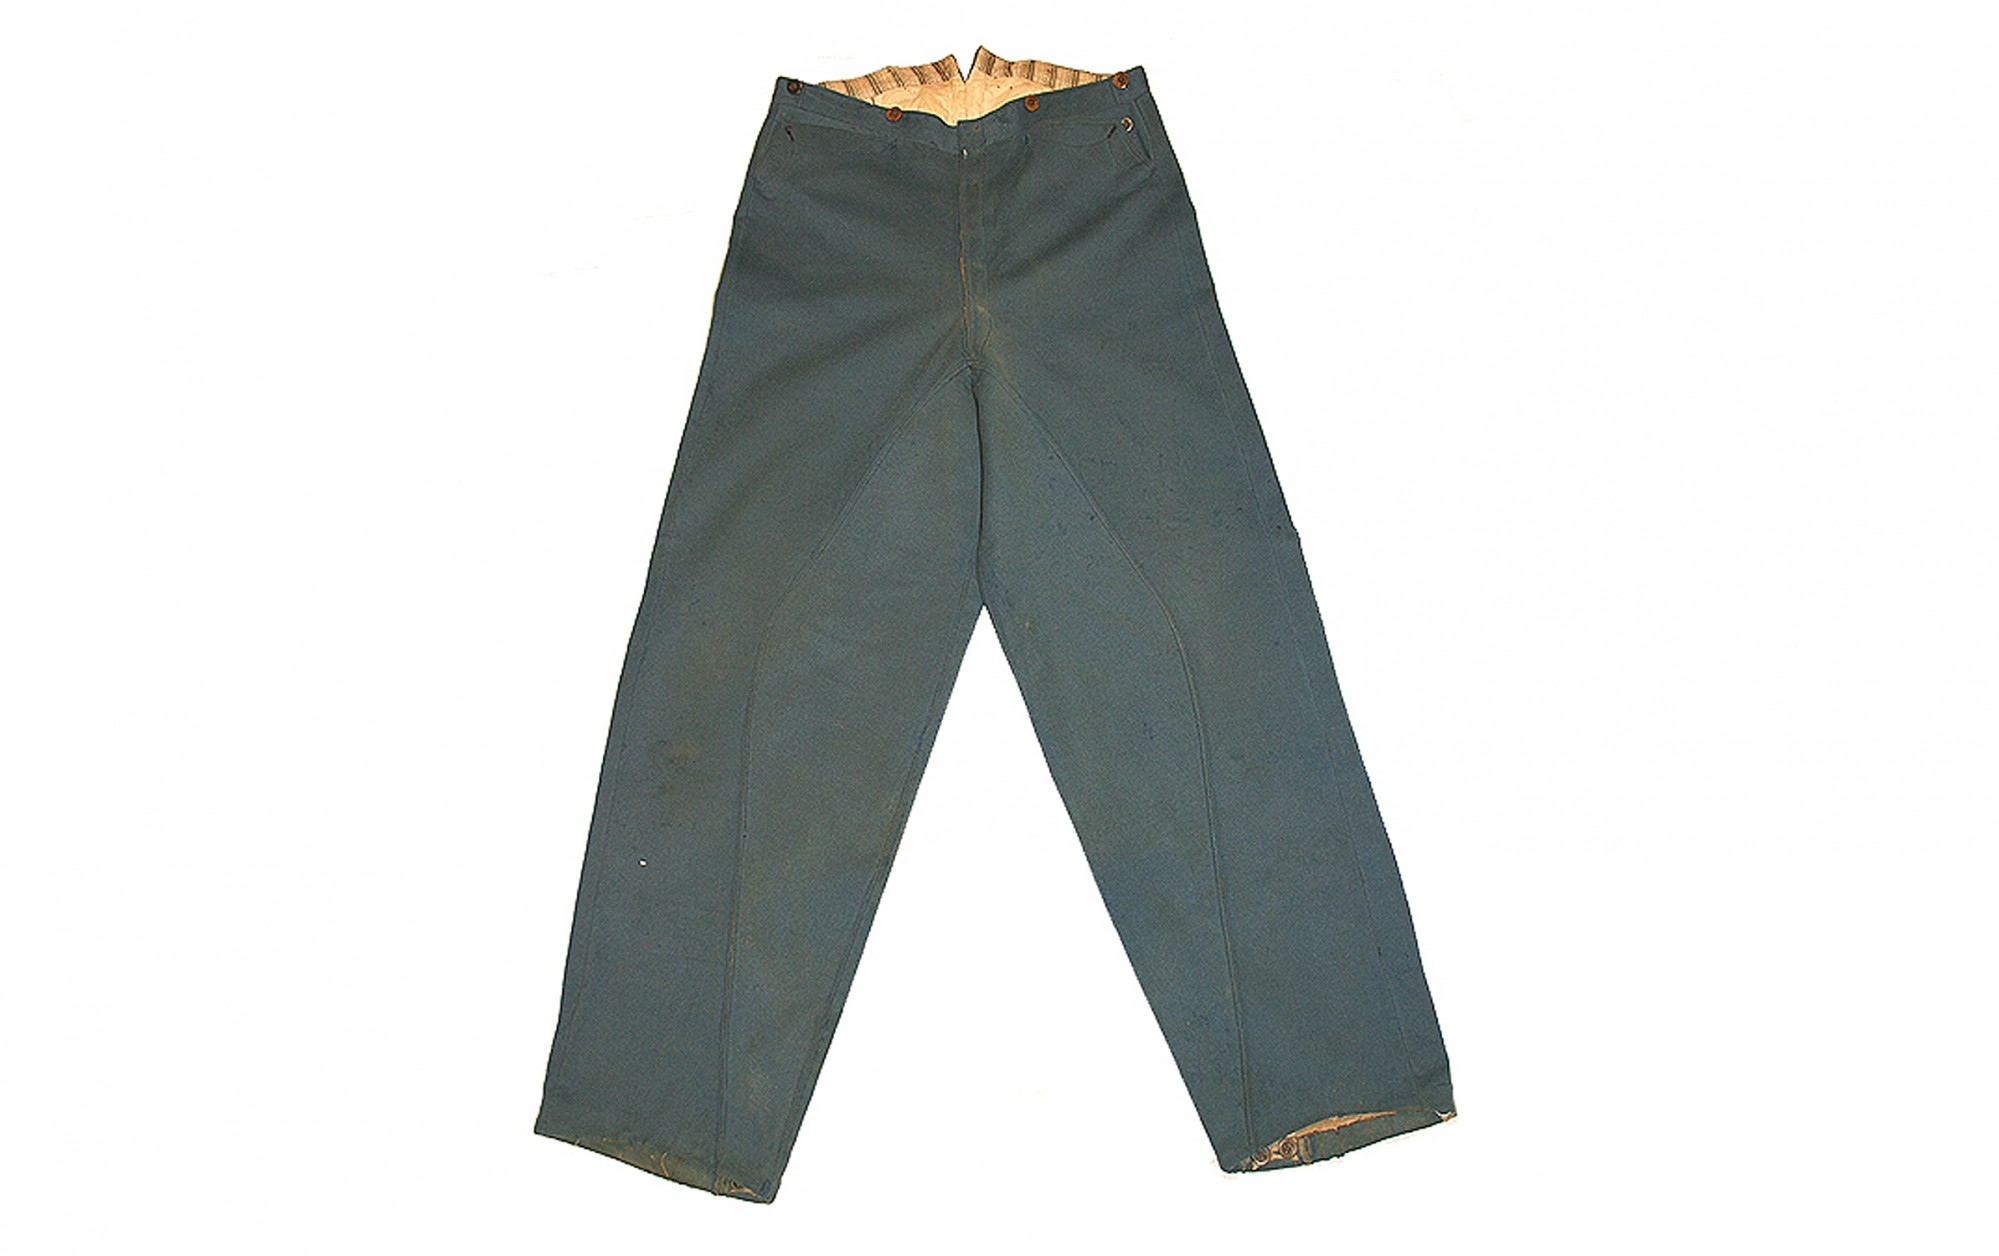 FINE PAIR OF RARE MOUNTED OR SADDLE TROUSERS